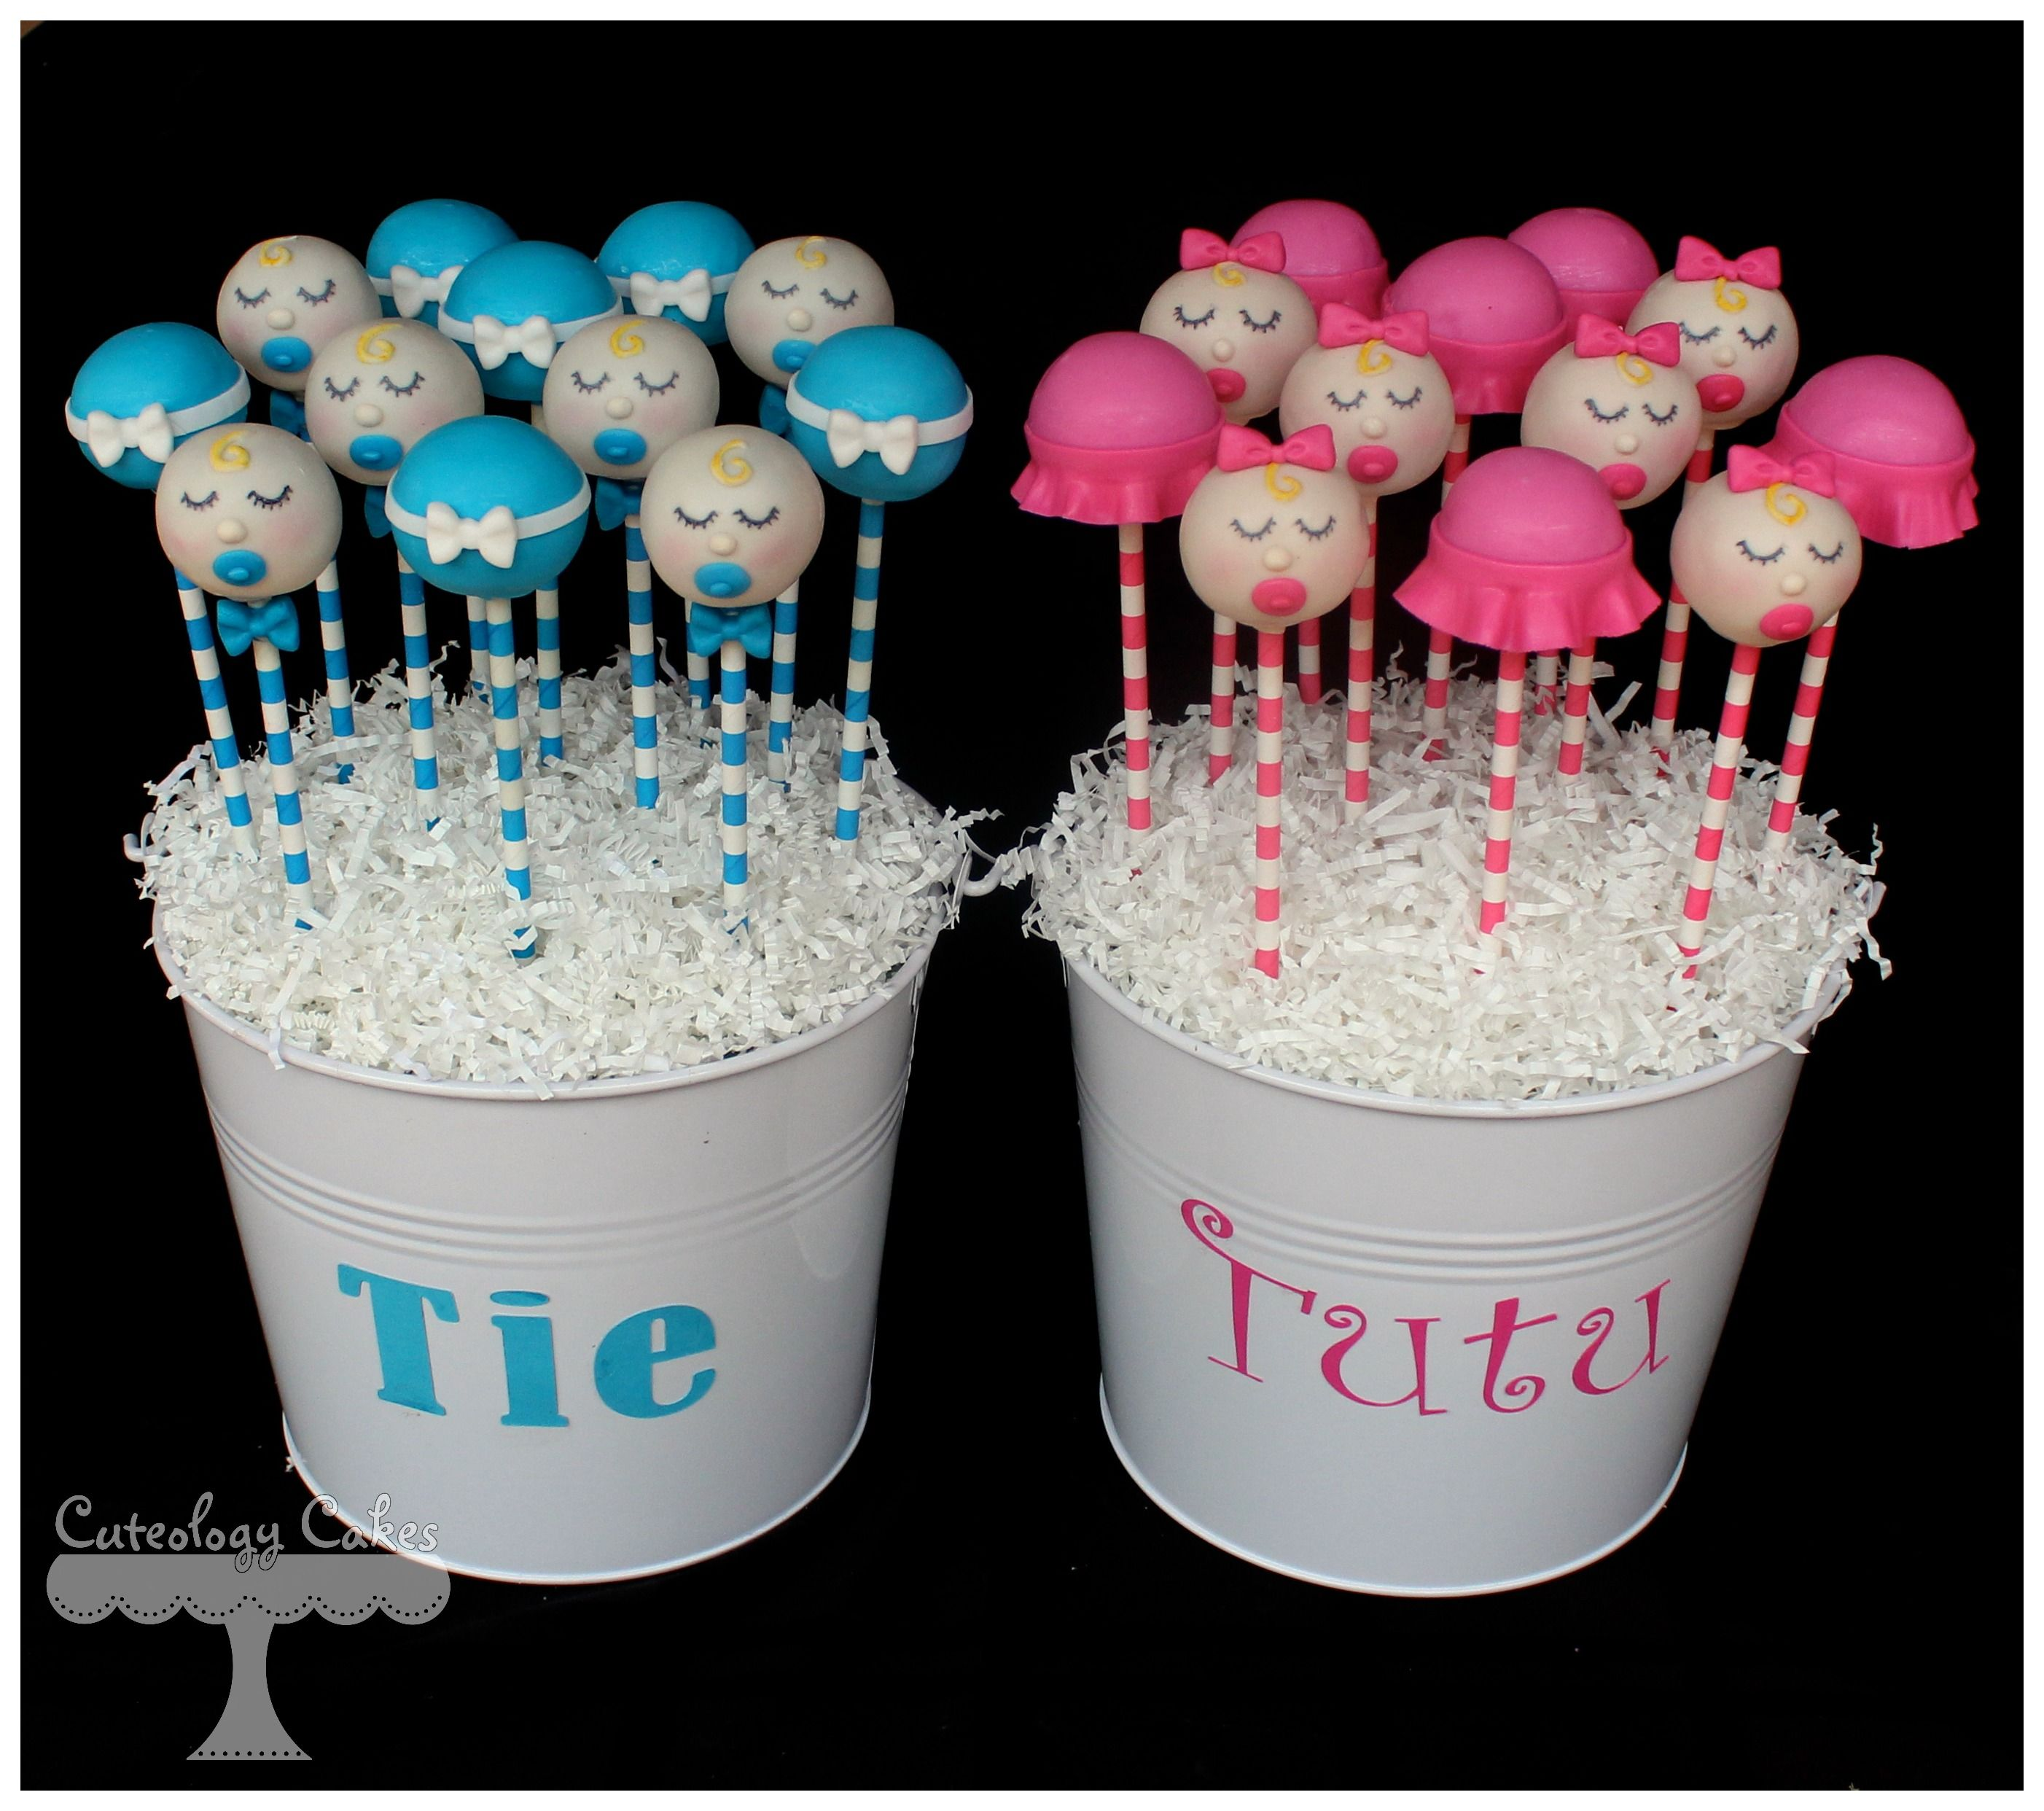 Tie Or Tutu Gender Reveal Cake Pop Bouquets With Ties Tutus And